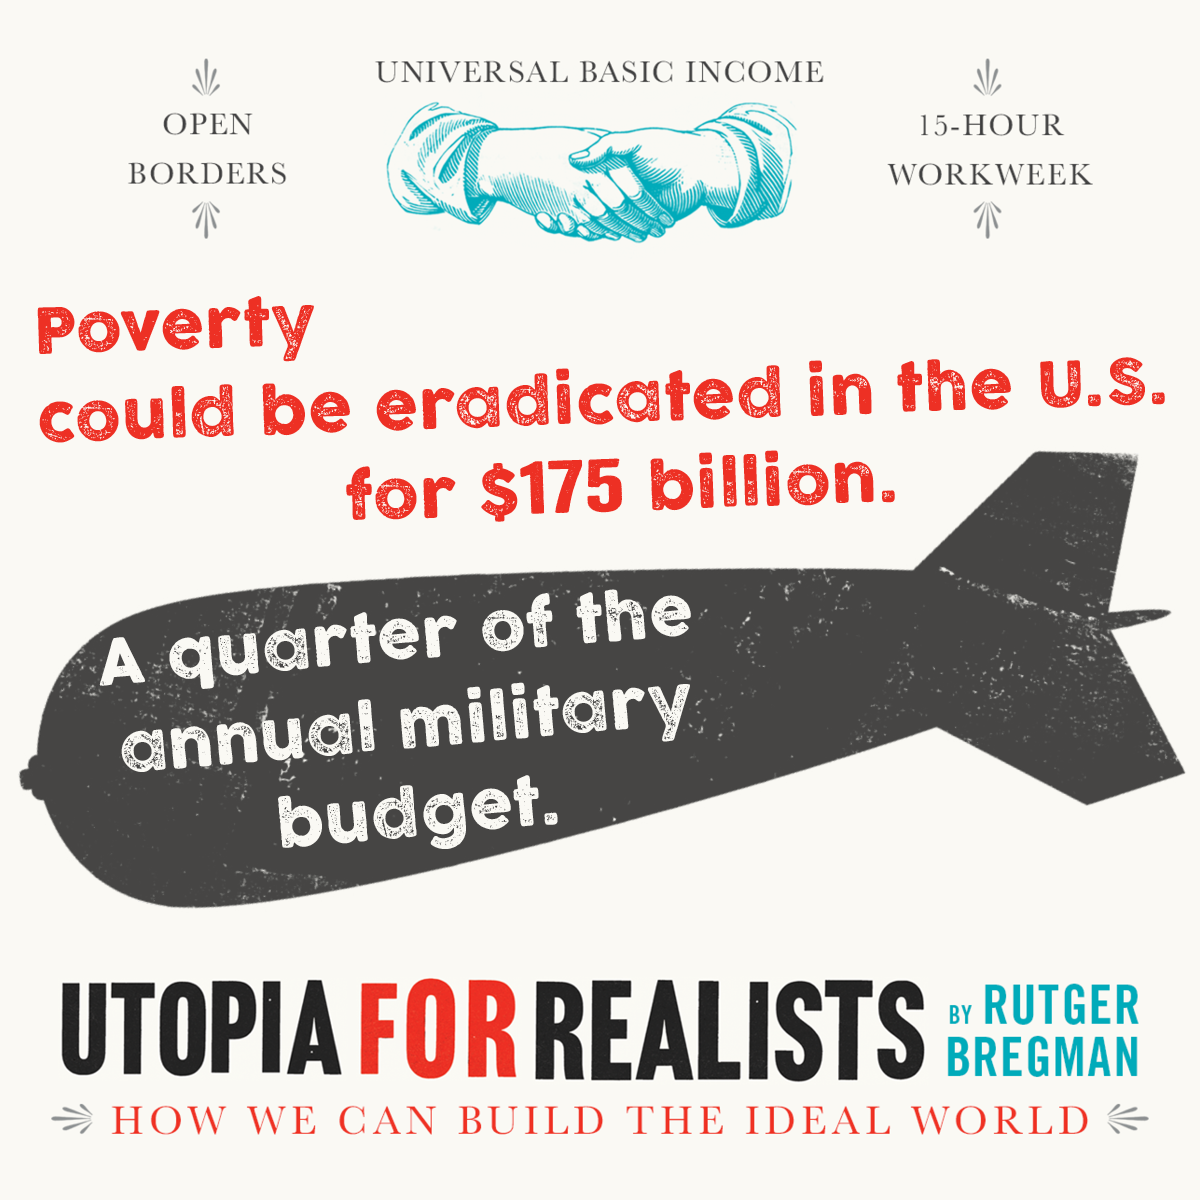 UtopiaforRealistsPovertyEradicated